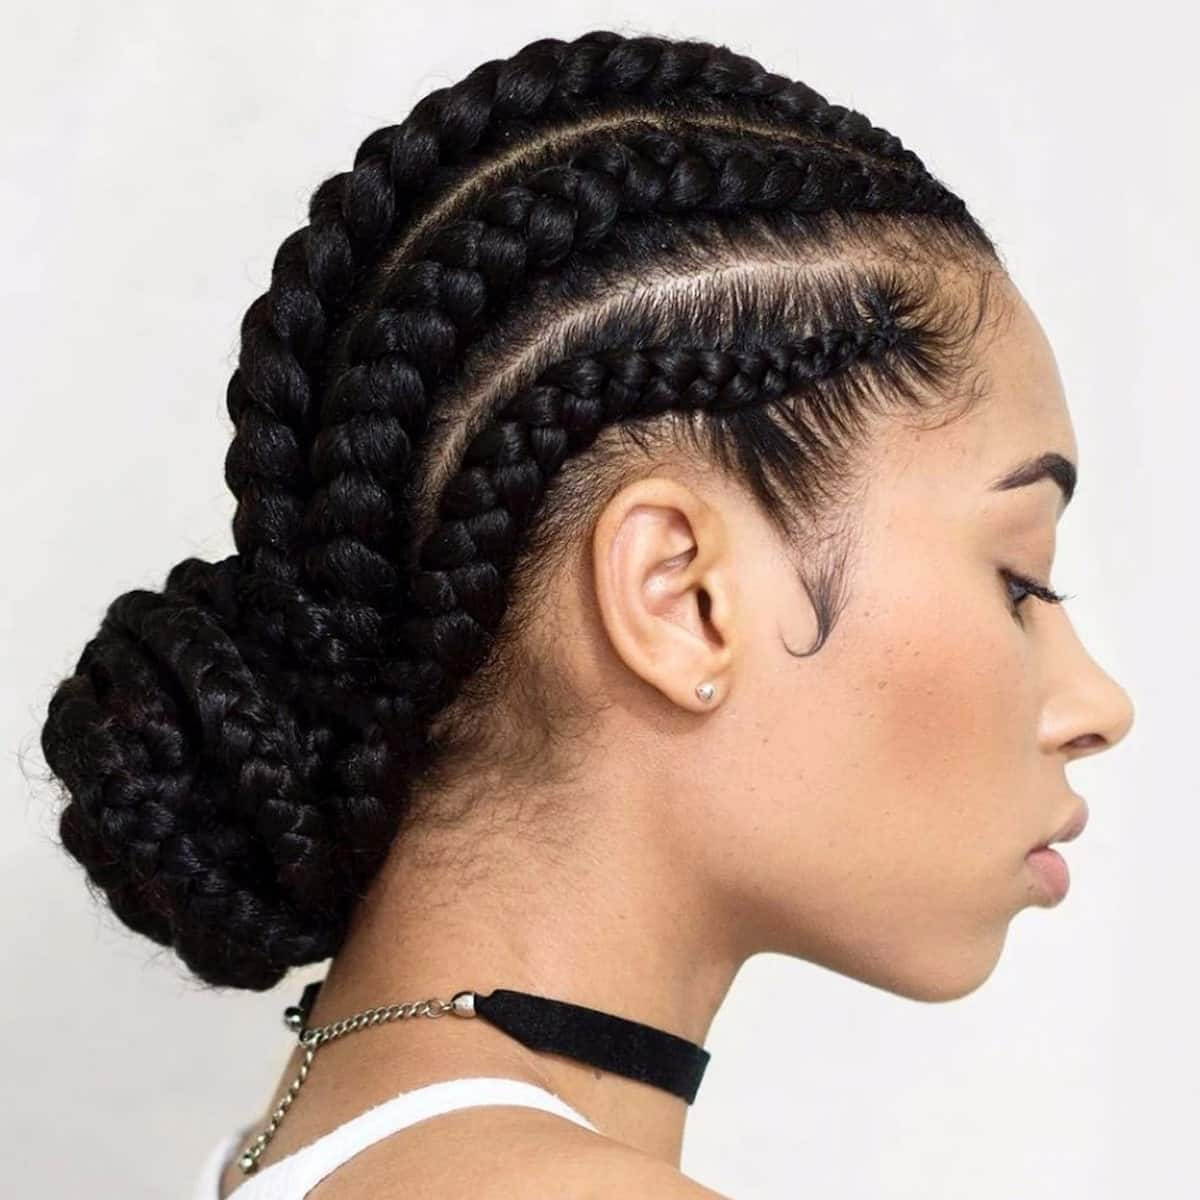 cornrow styles for round faces cornrow braids cornrow styles in ghana cornrow styles for natural hair